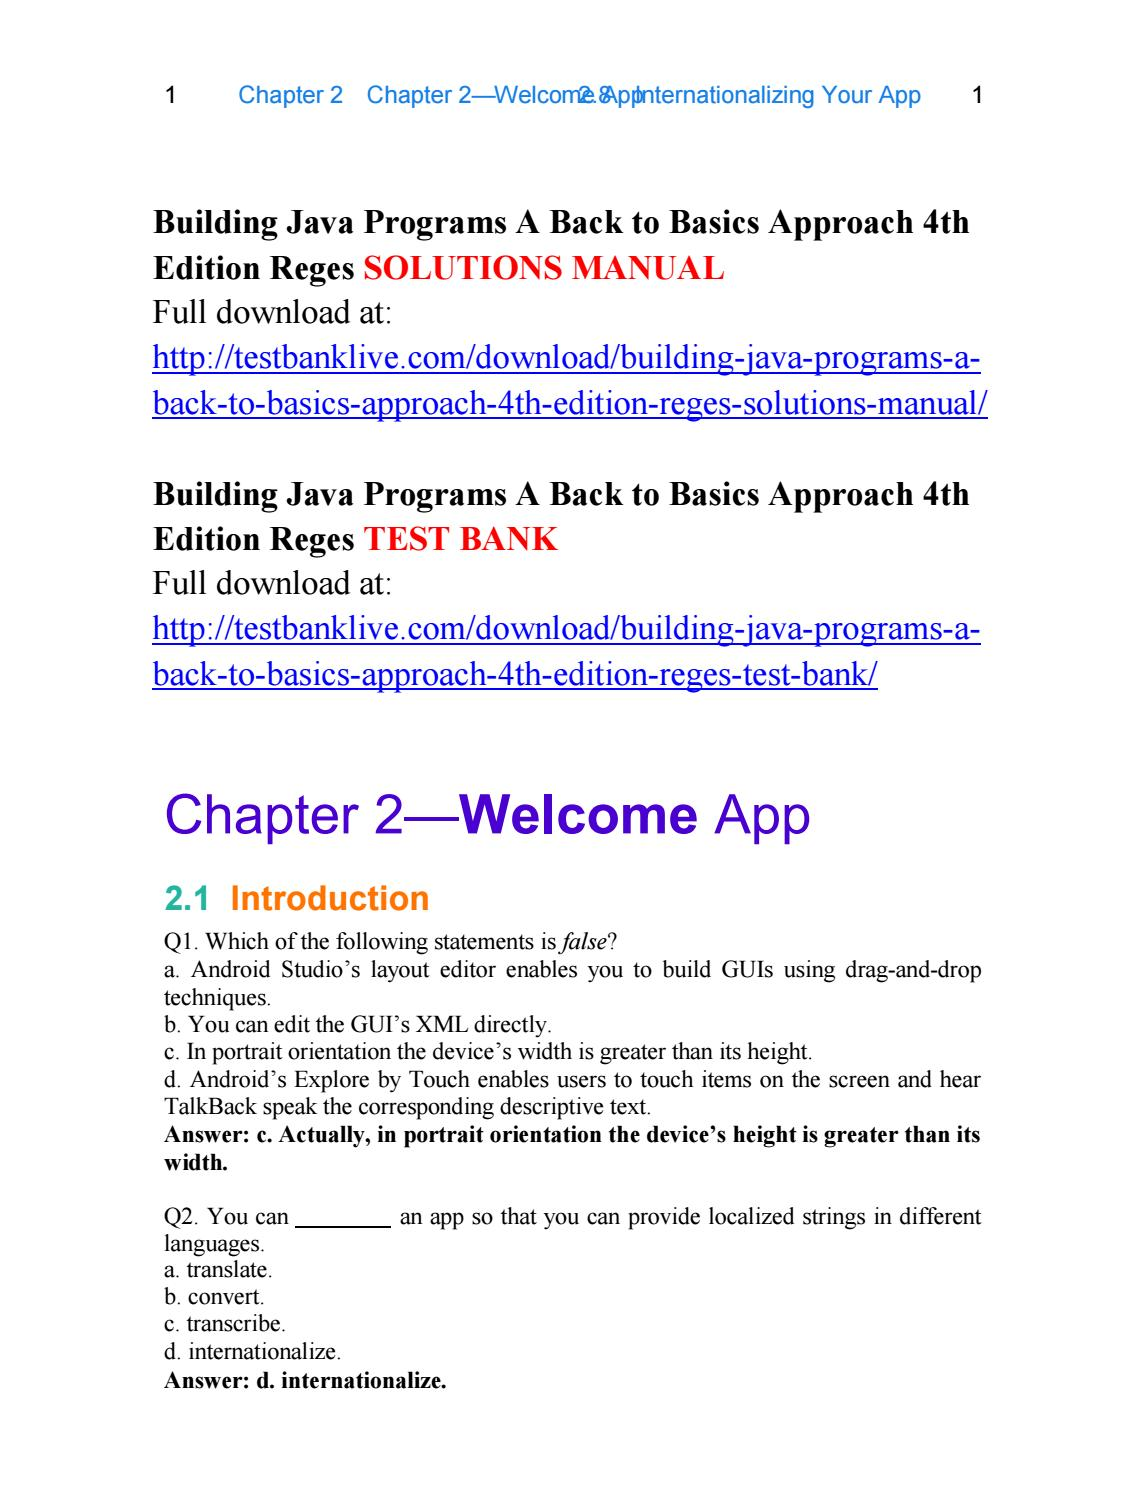 Building java programs a back to basics approach 4th edition reges  solutions manual by Diablo - issuu